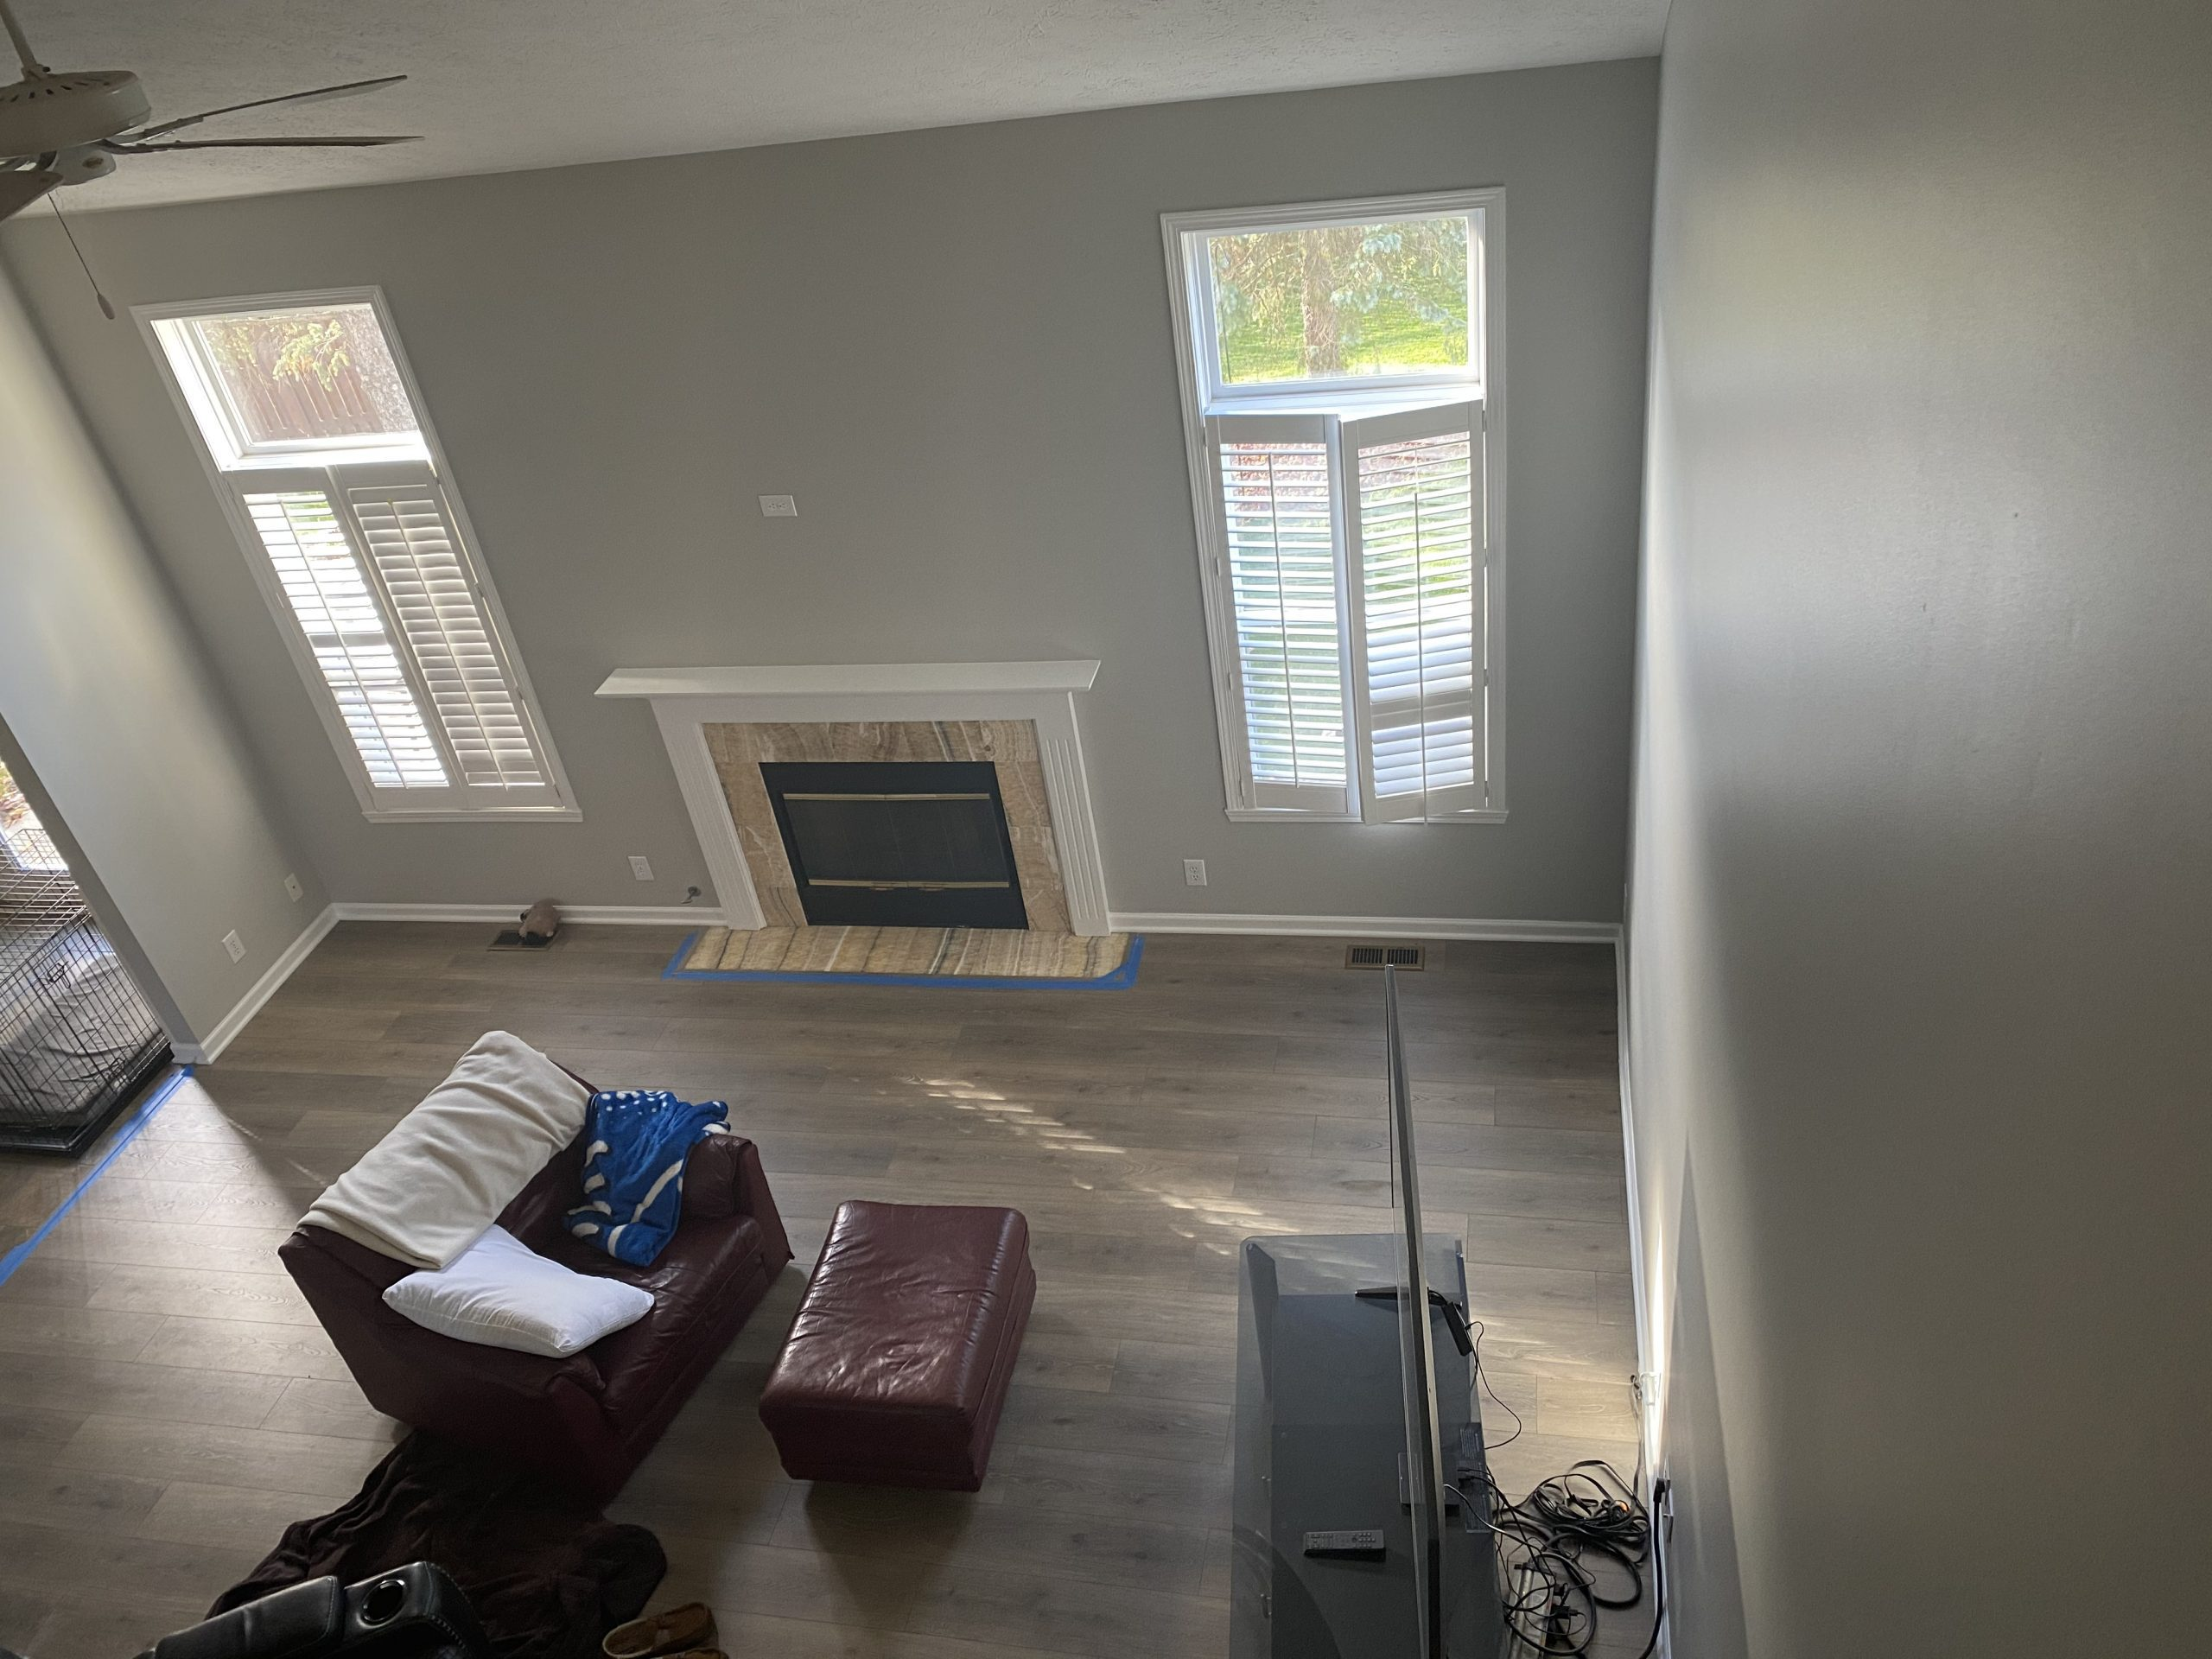 A picture from the second floor looking down on the living room showing the new gray walls and white trim around the fireplace.